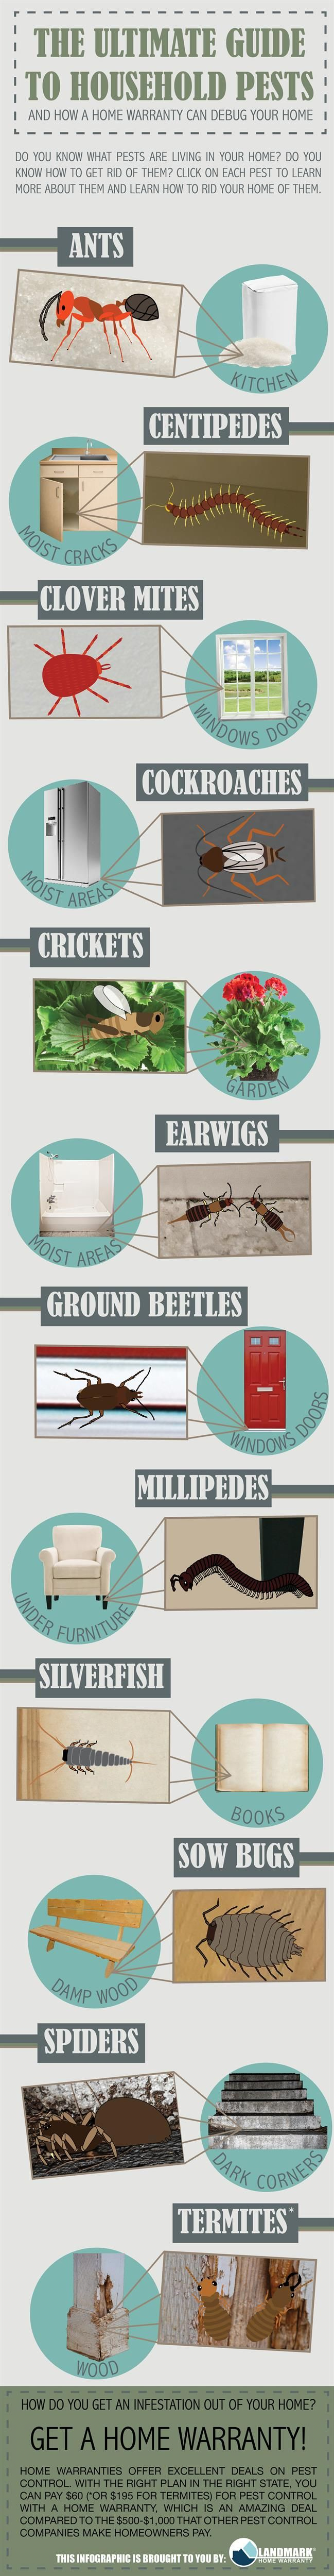 Do you know about household pests? Here is our handy interactive infographic to learn about each common household pest!